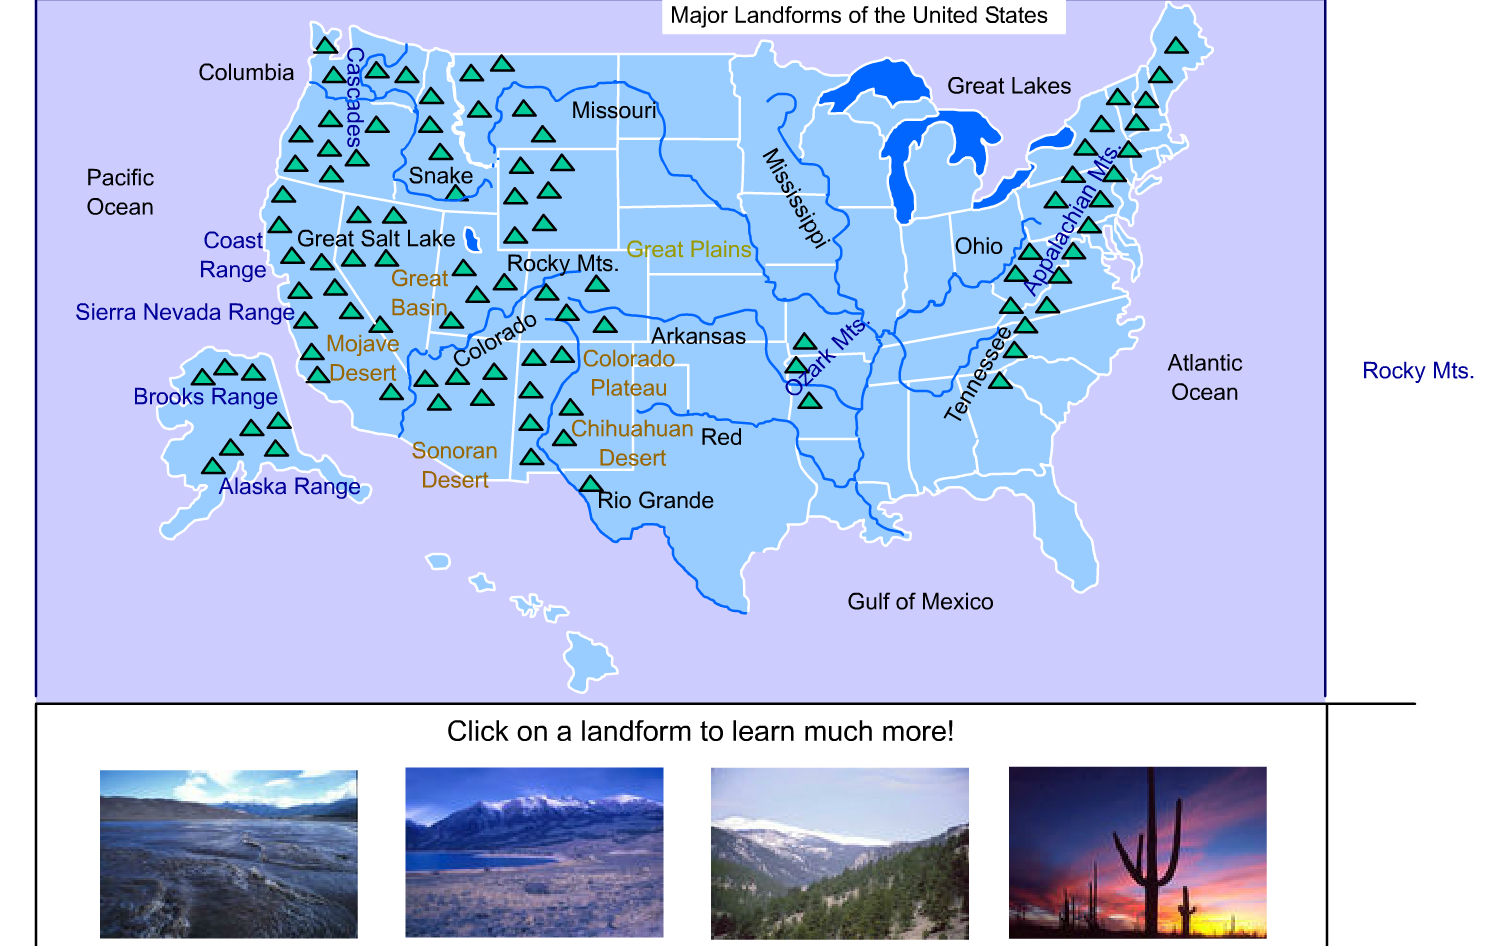 16 GEOGRAPHY Major Landforms of the United States interactive map